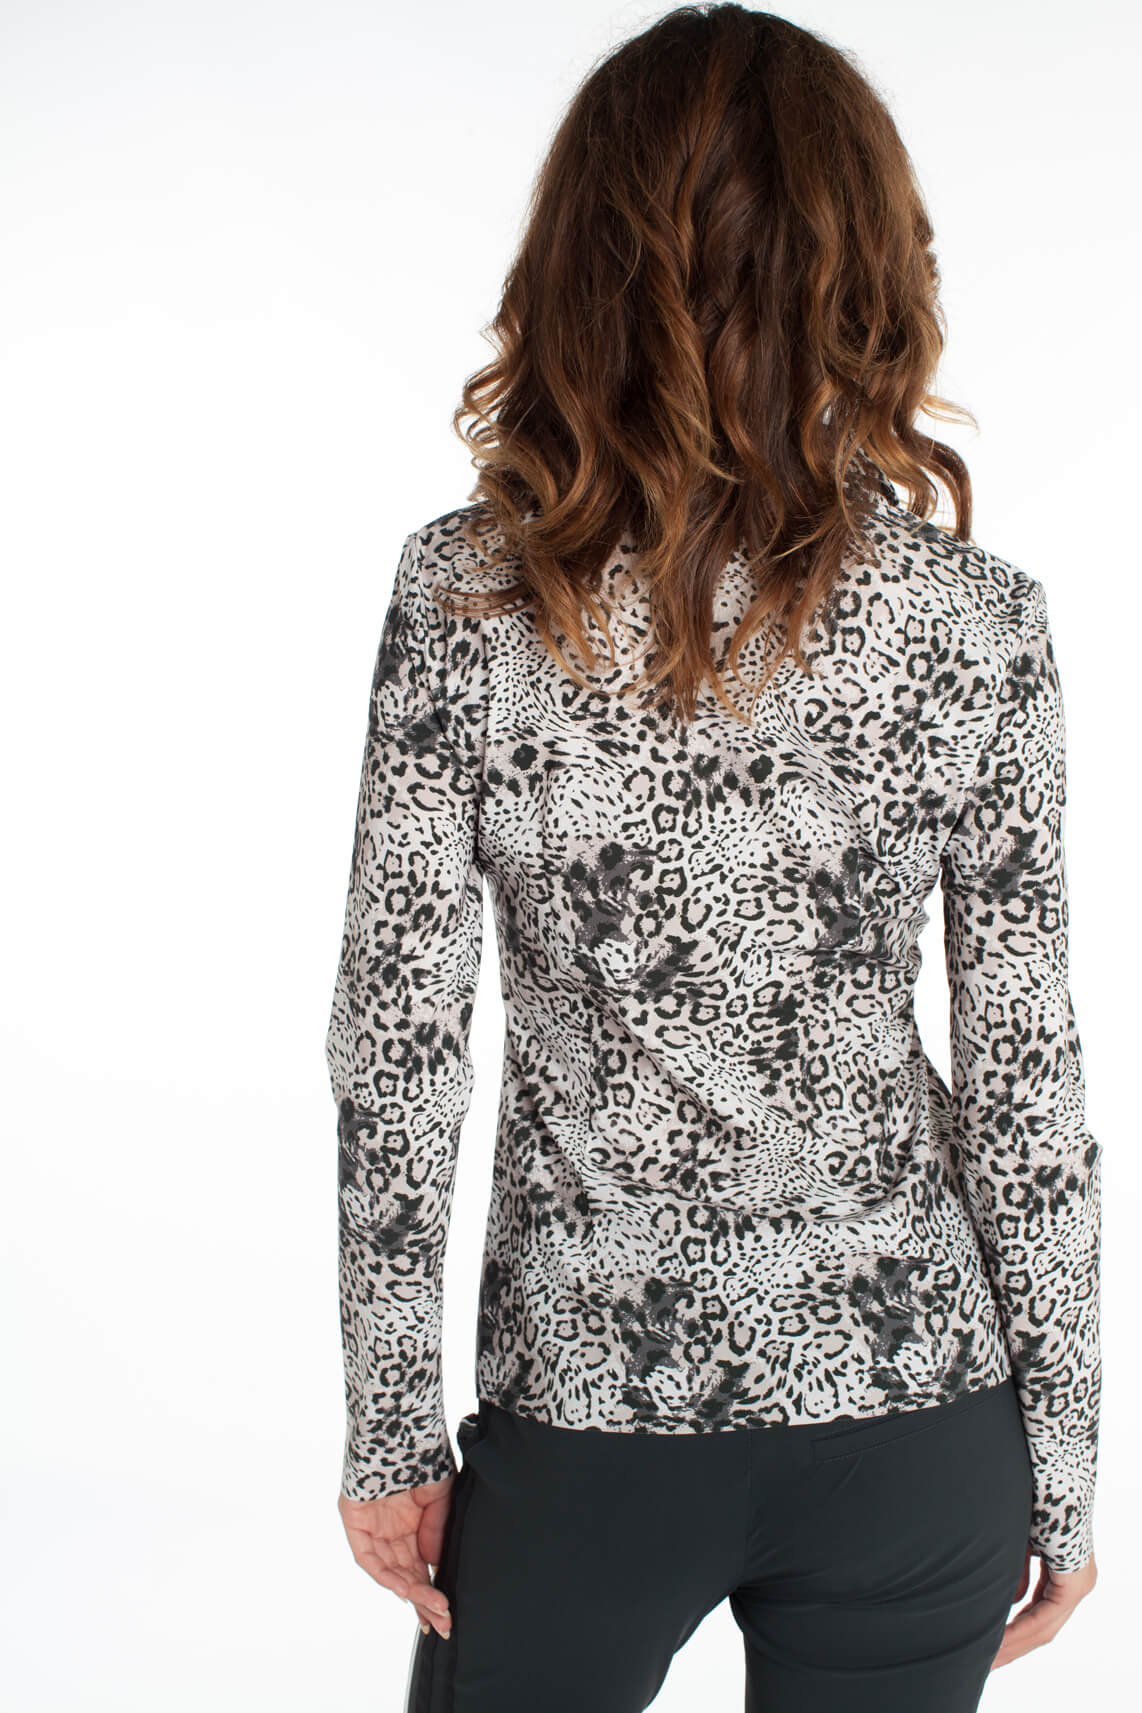 Jane Lushka Dames Blouse met animalprint Ecru